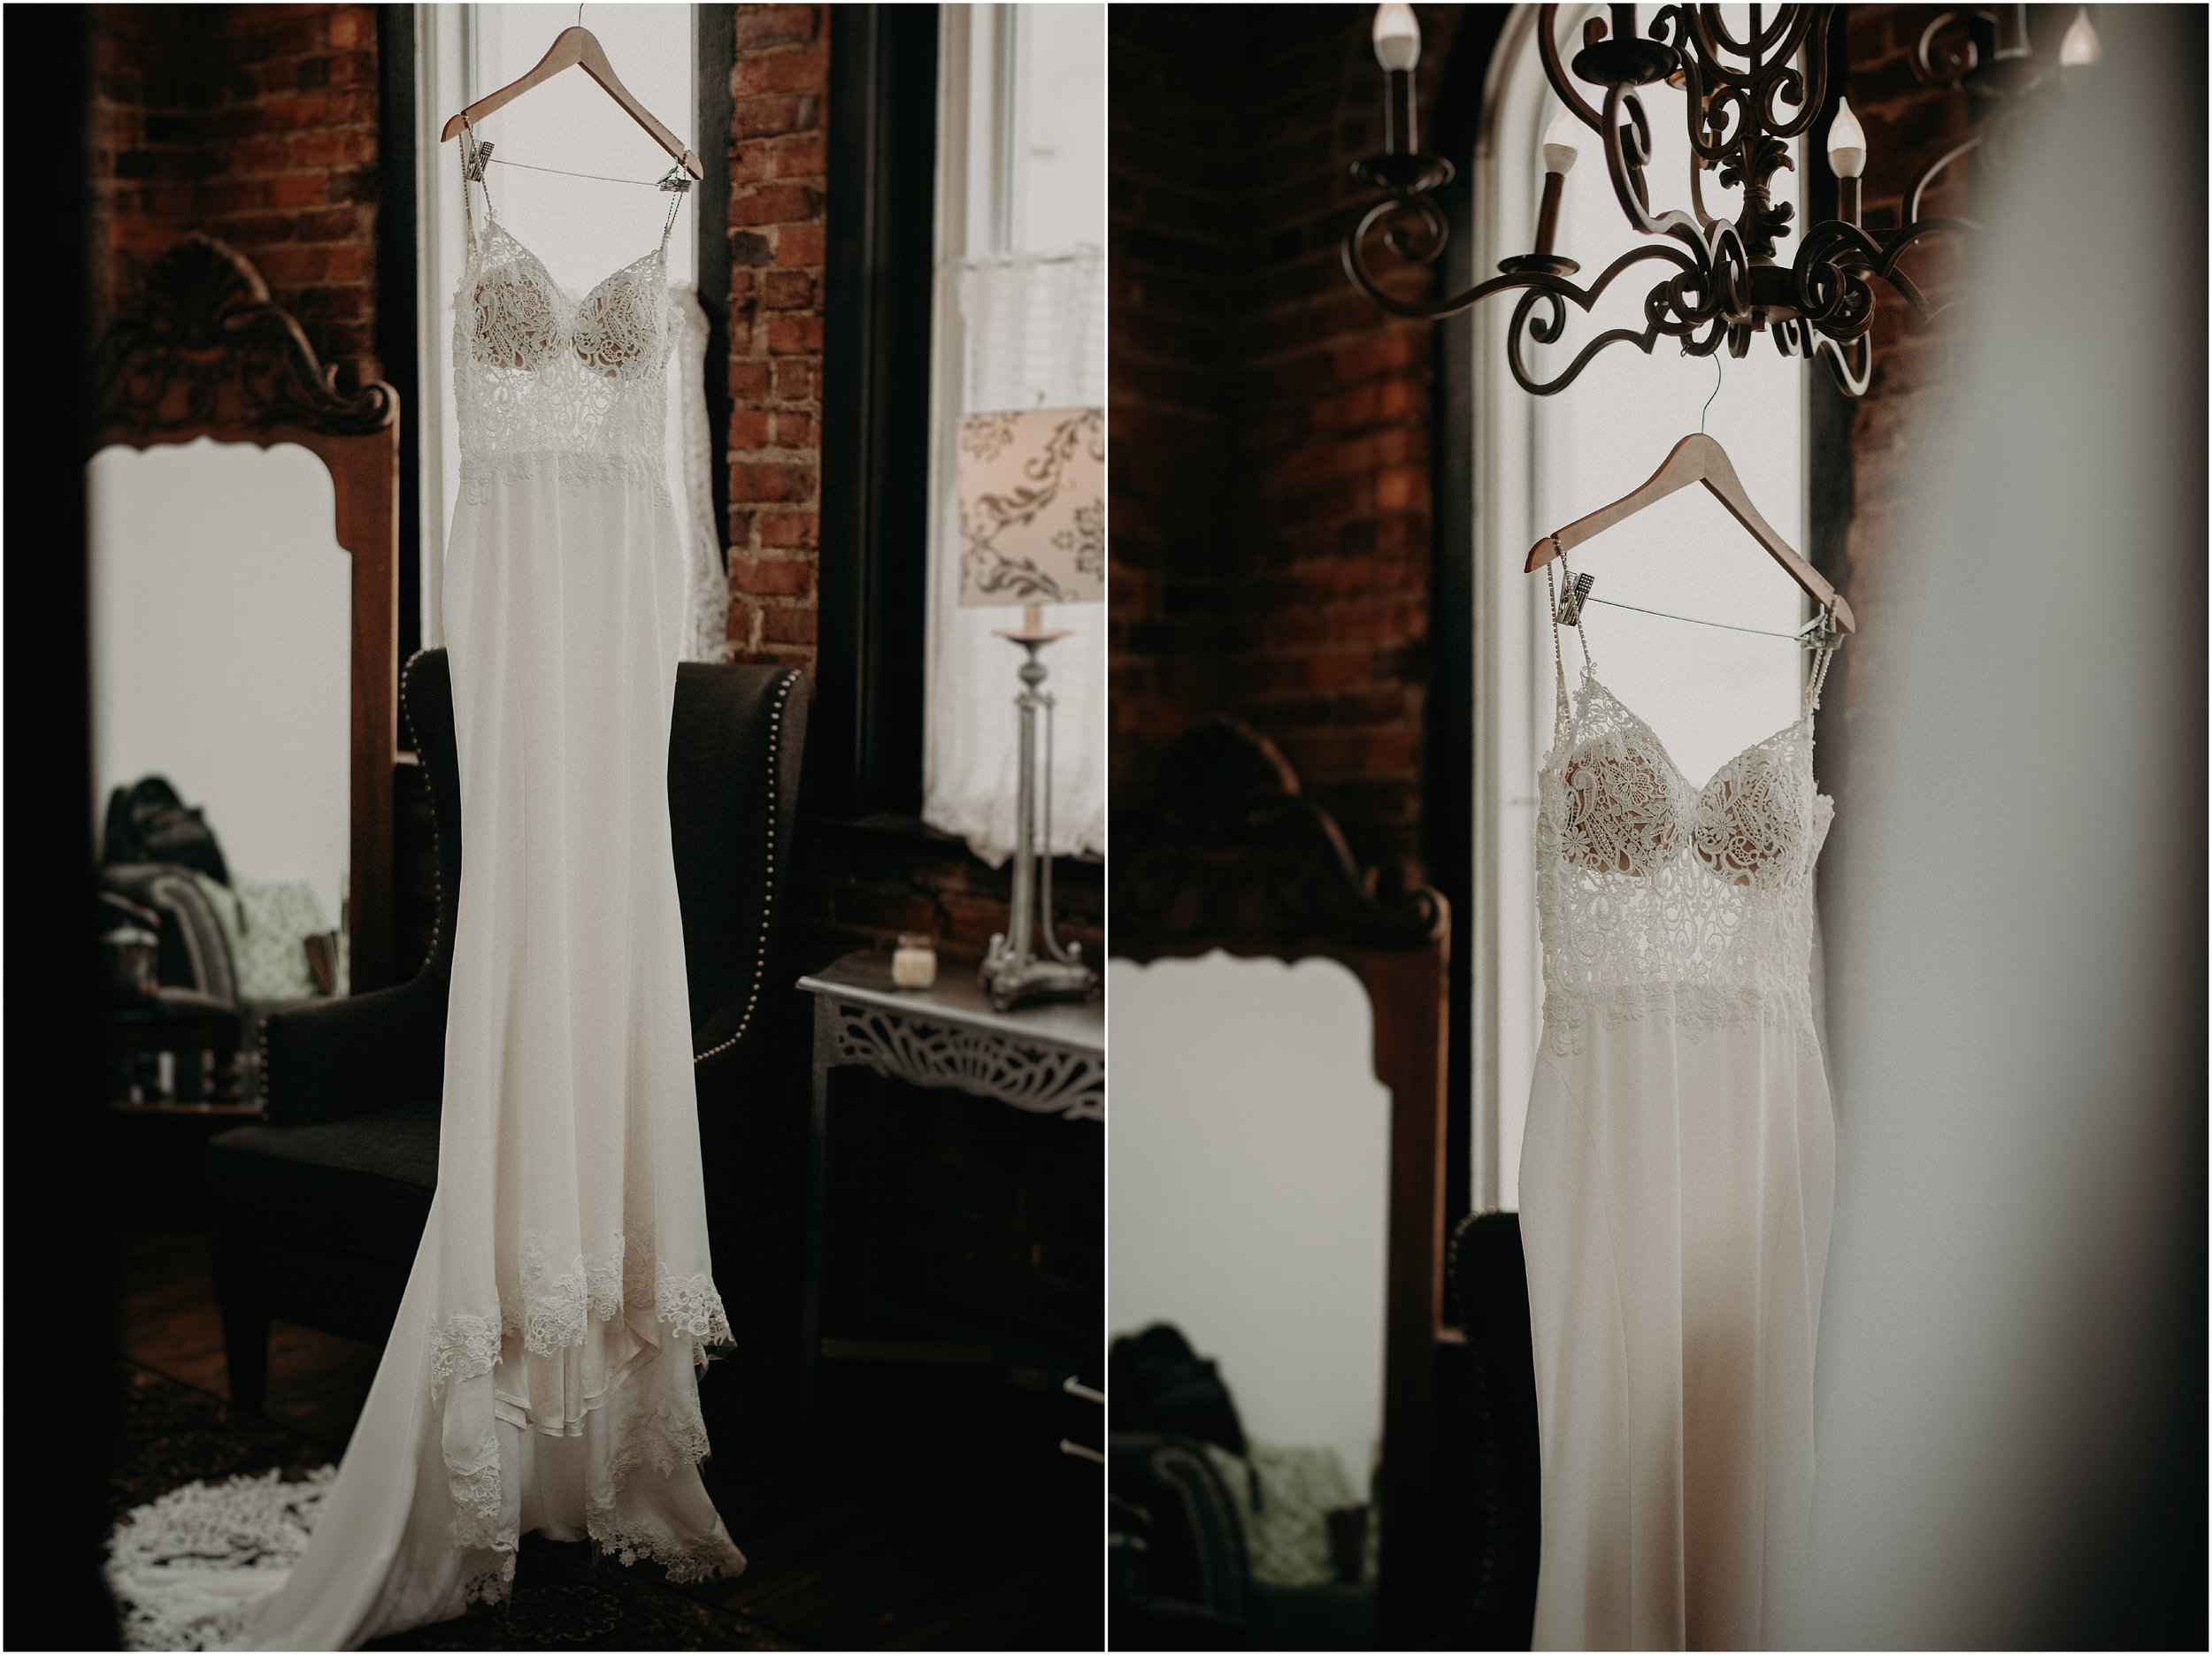 Bride's dress hangs from the chandelier in the Church on Main bridal suite